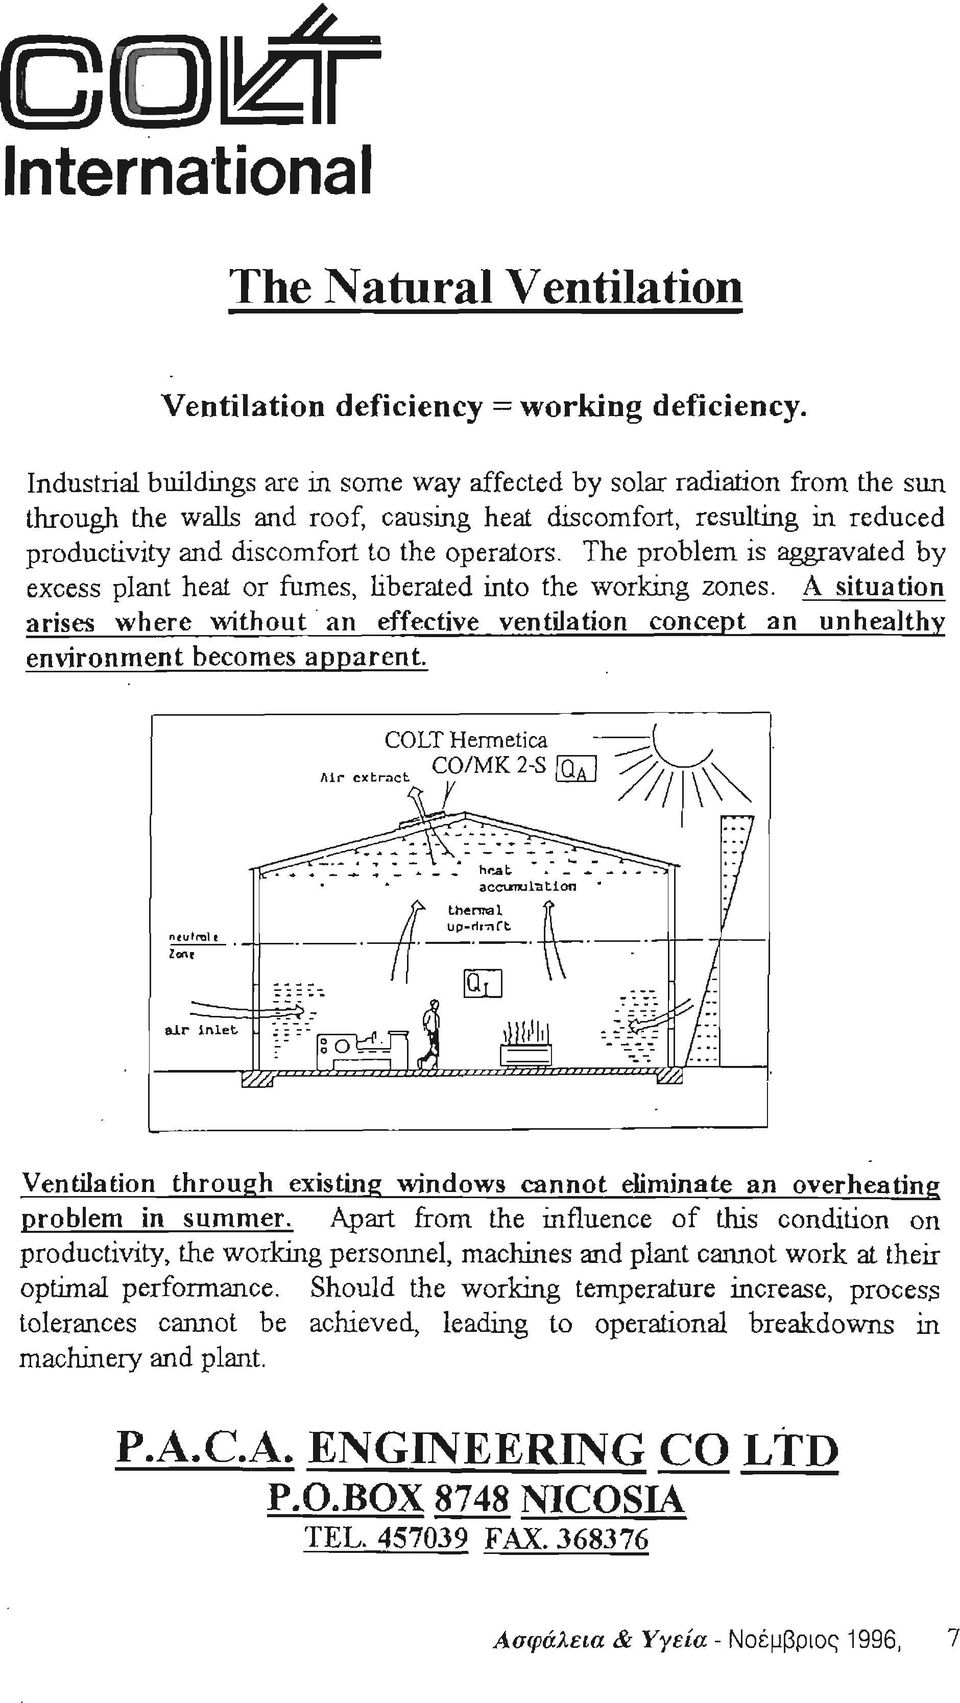 The problem is aggravated by excess plant heat or fumes, hberated into the \vorking zones. Α situation arises where without an effective ventilation concept an unhealthy environment becomes apparent.